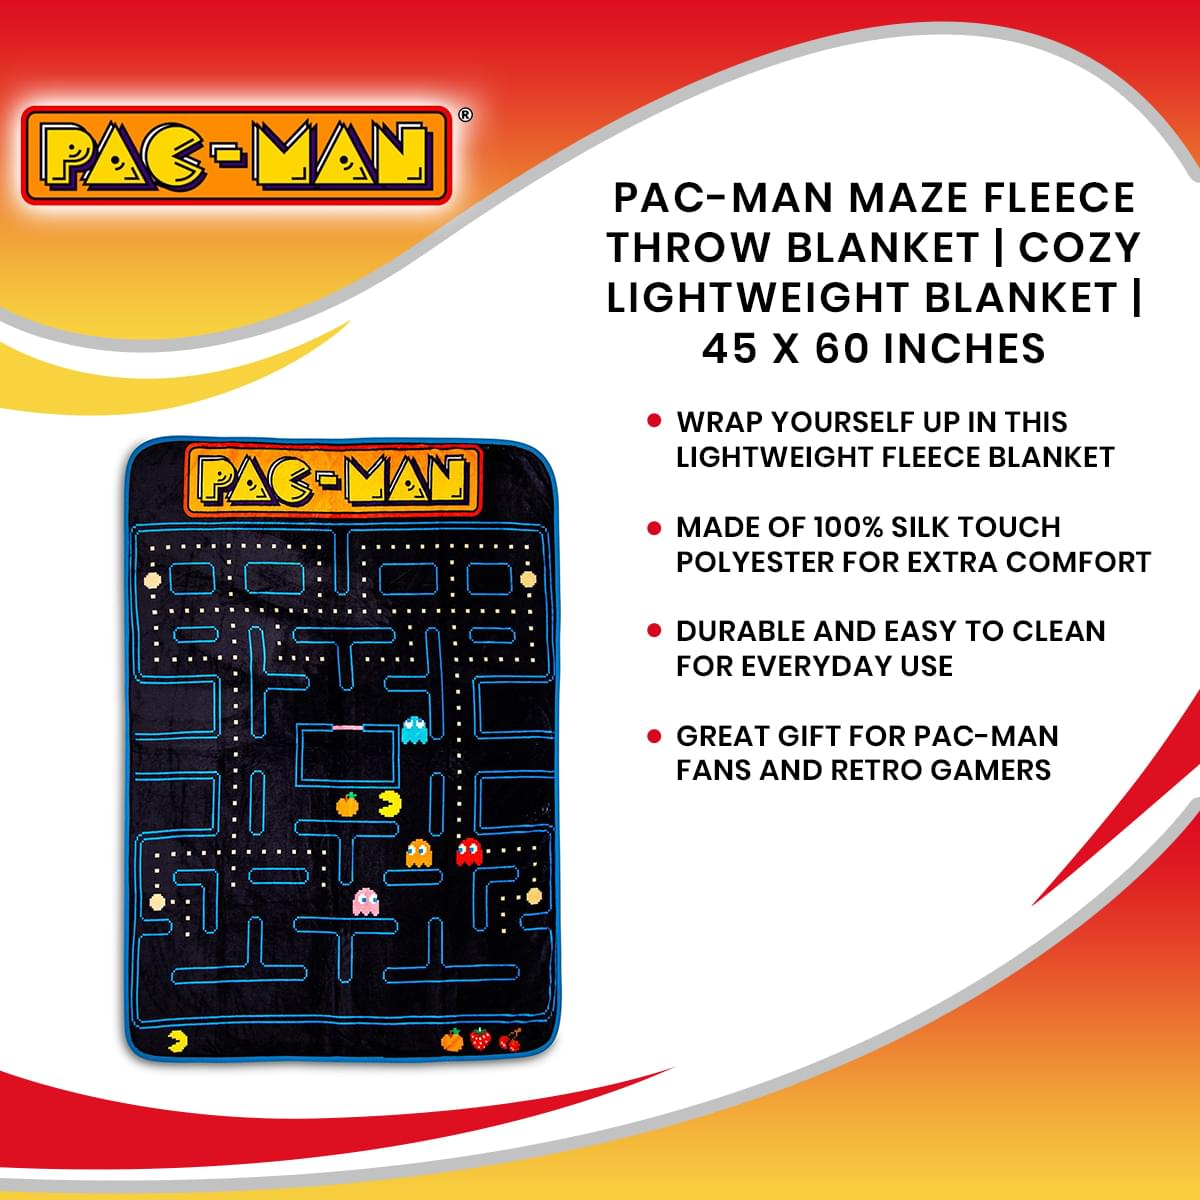 Pac-Man Maze Fleece Throw Blanket | Cozy Lightweight Blanket | 45 x 60 Inches